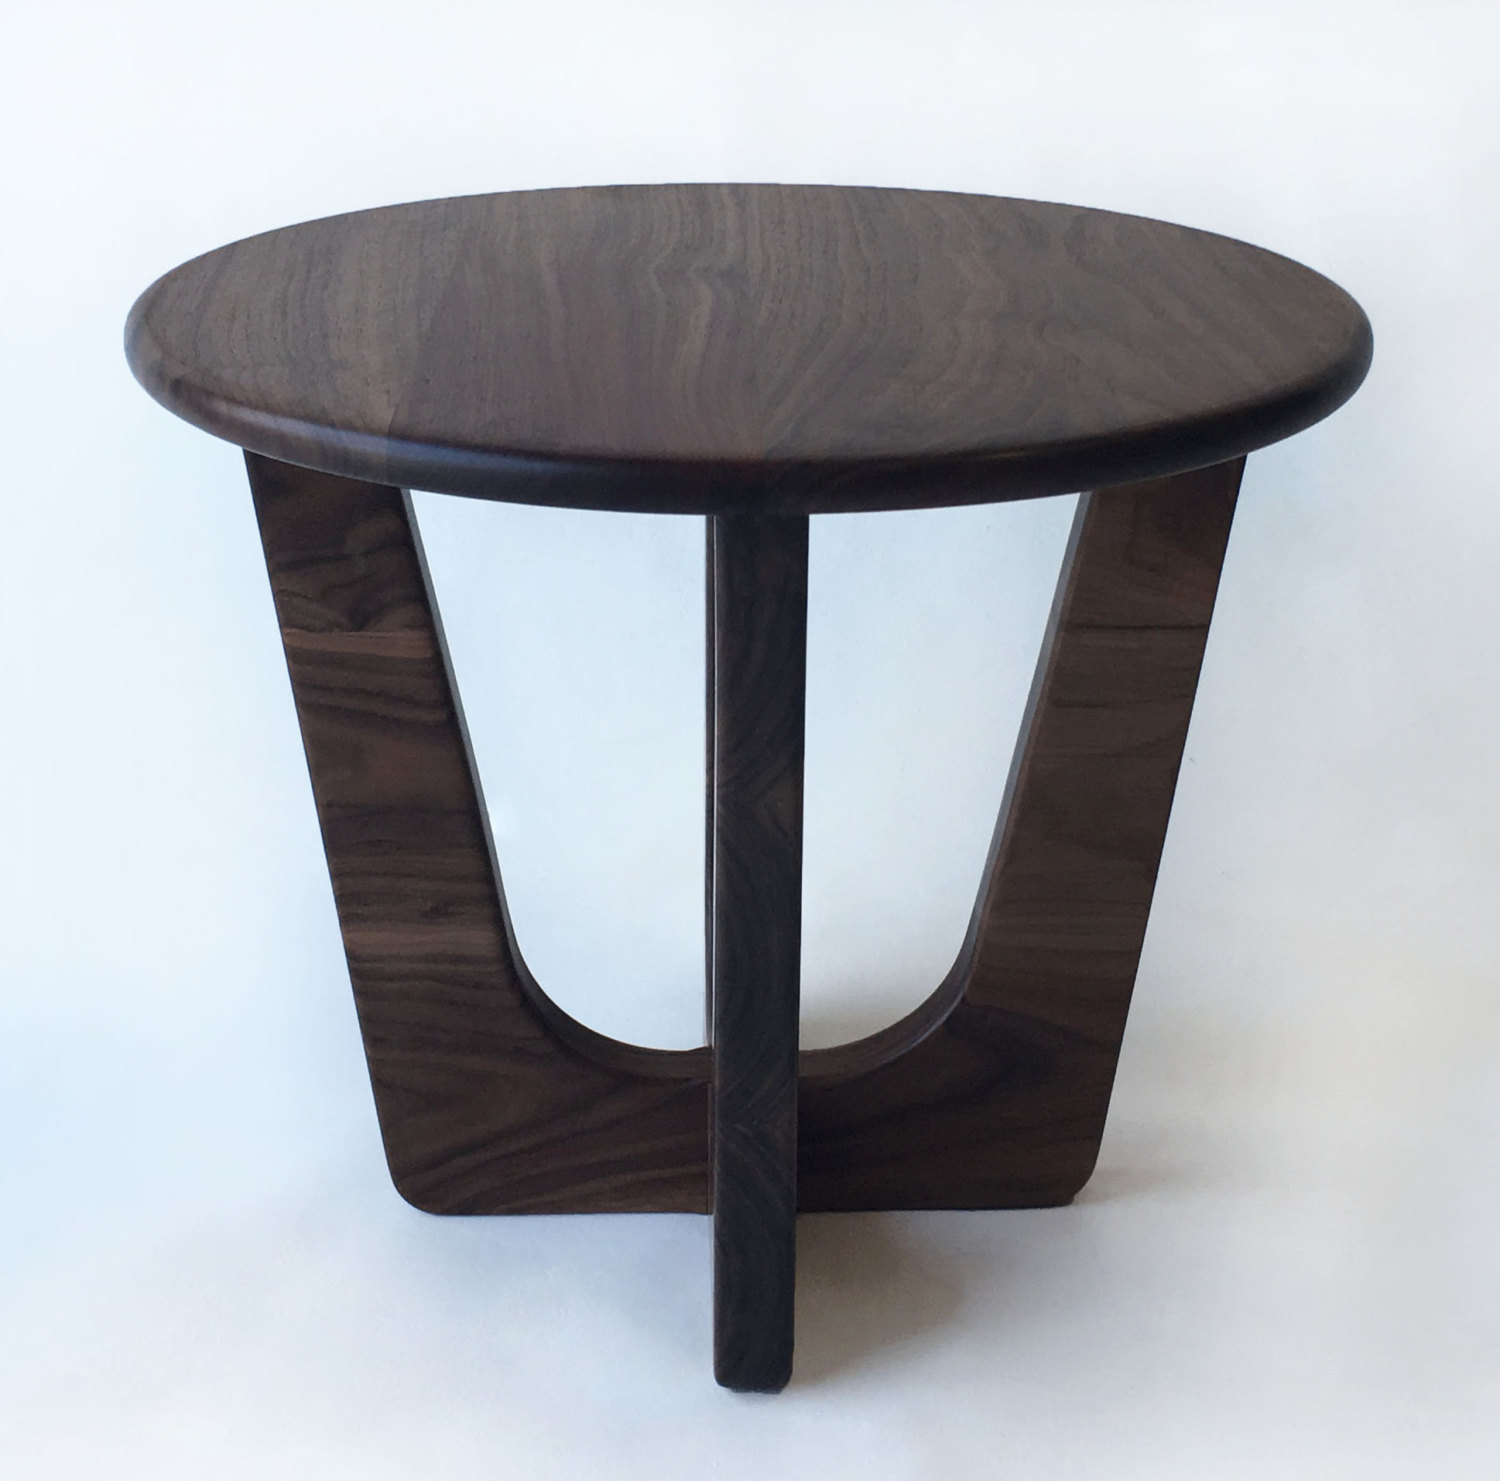 Pearsall Inspired 20u2033 Round Mid Century Modern Coffee Cocktail Table ...